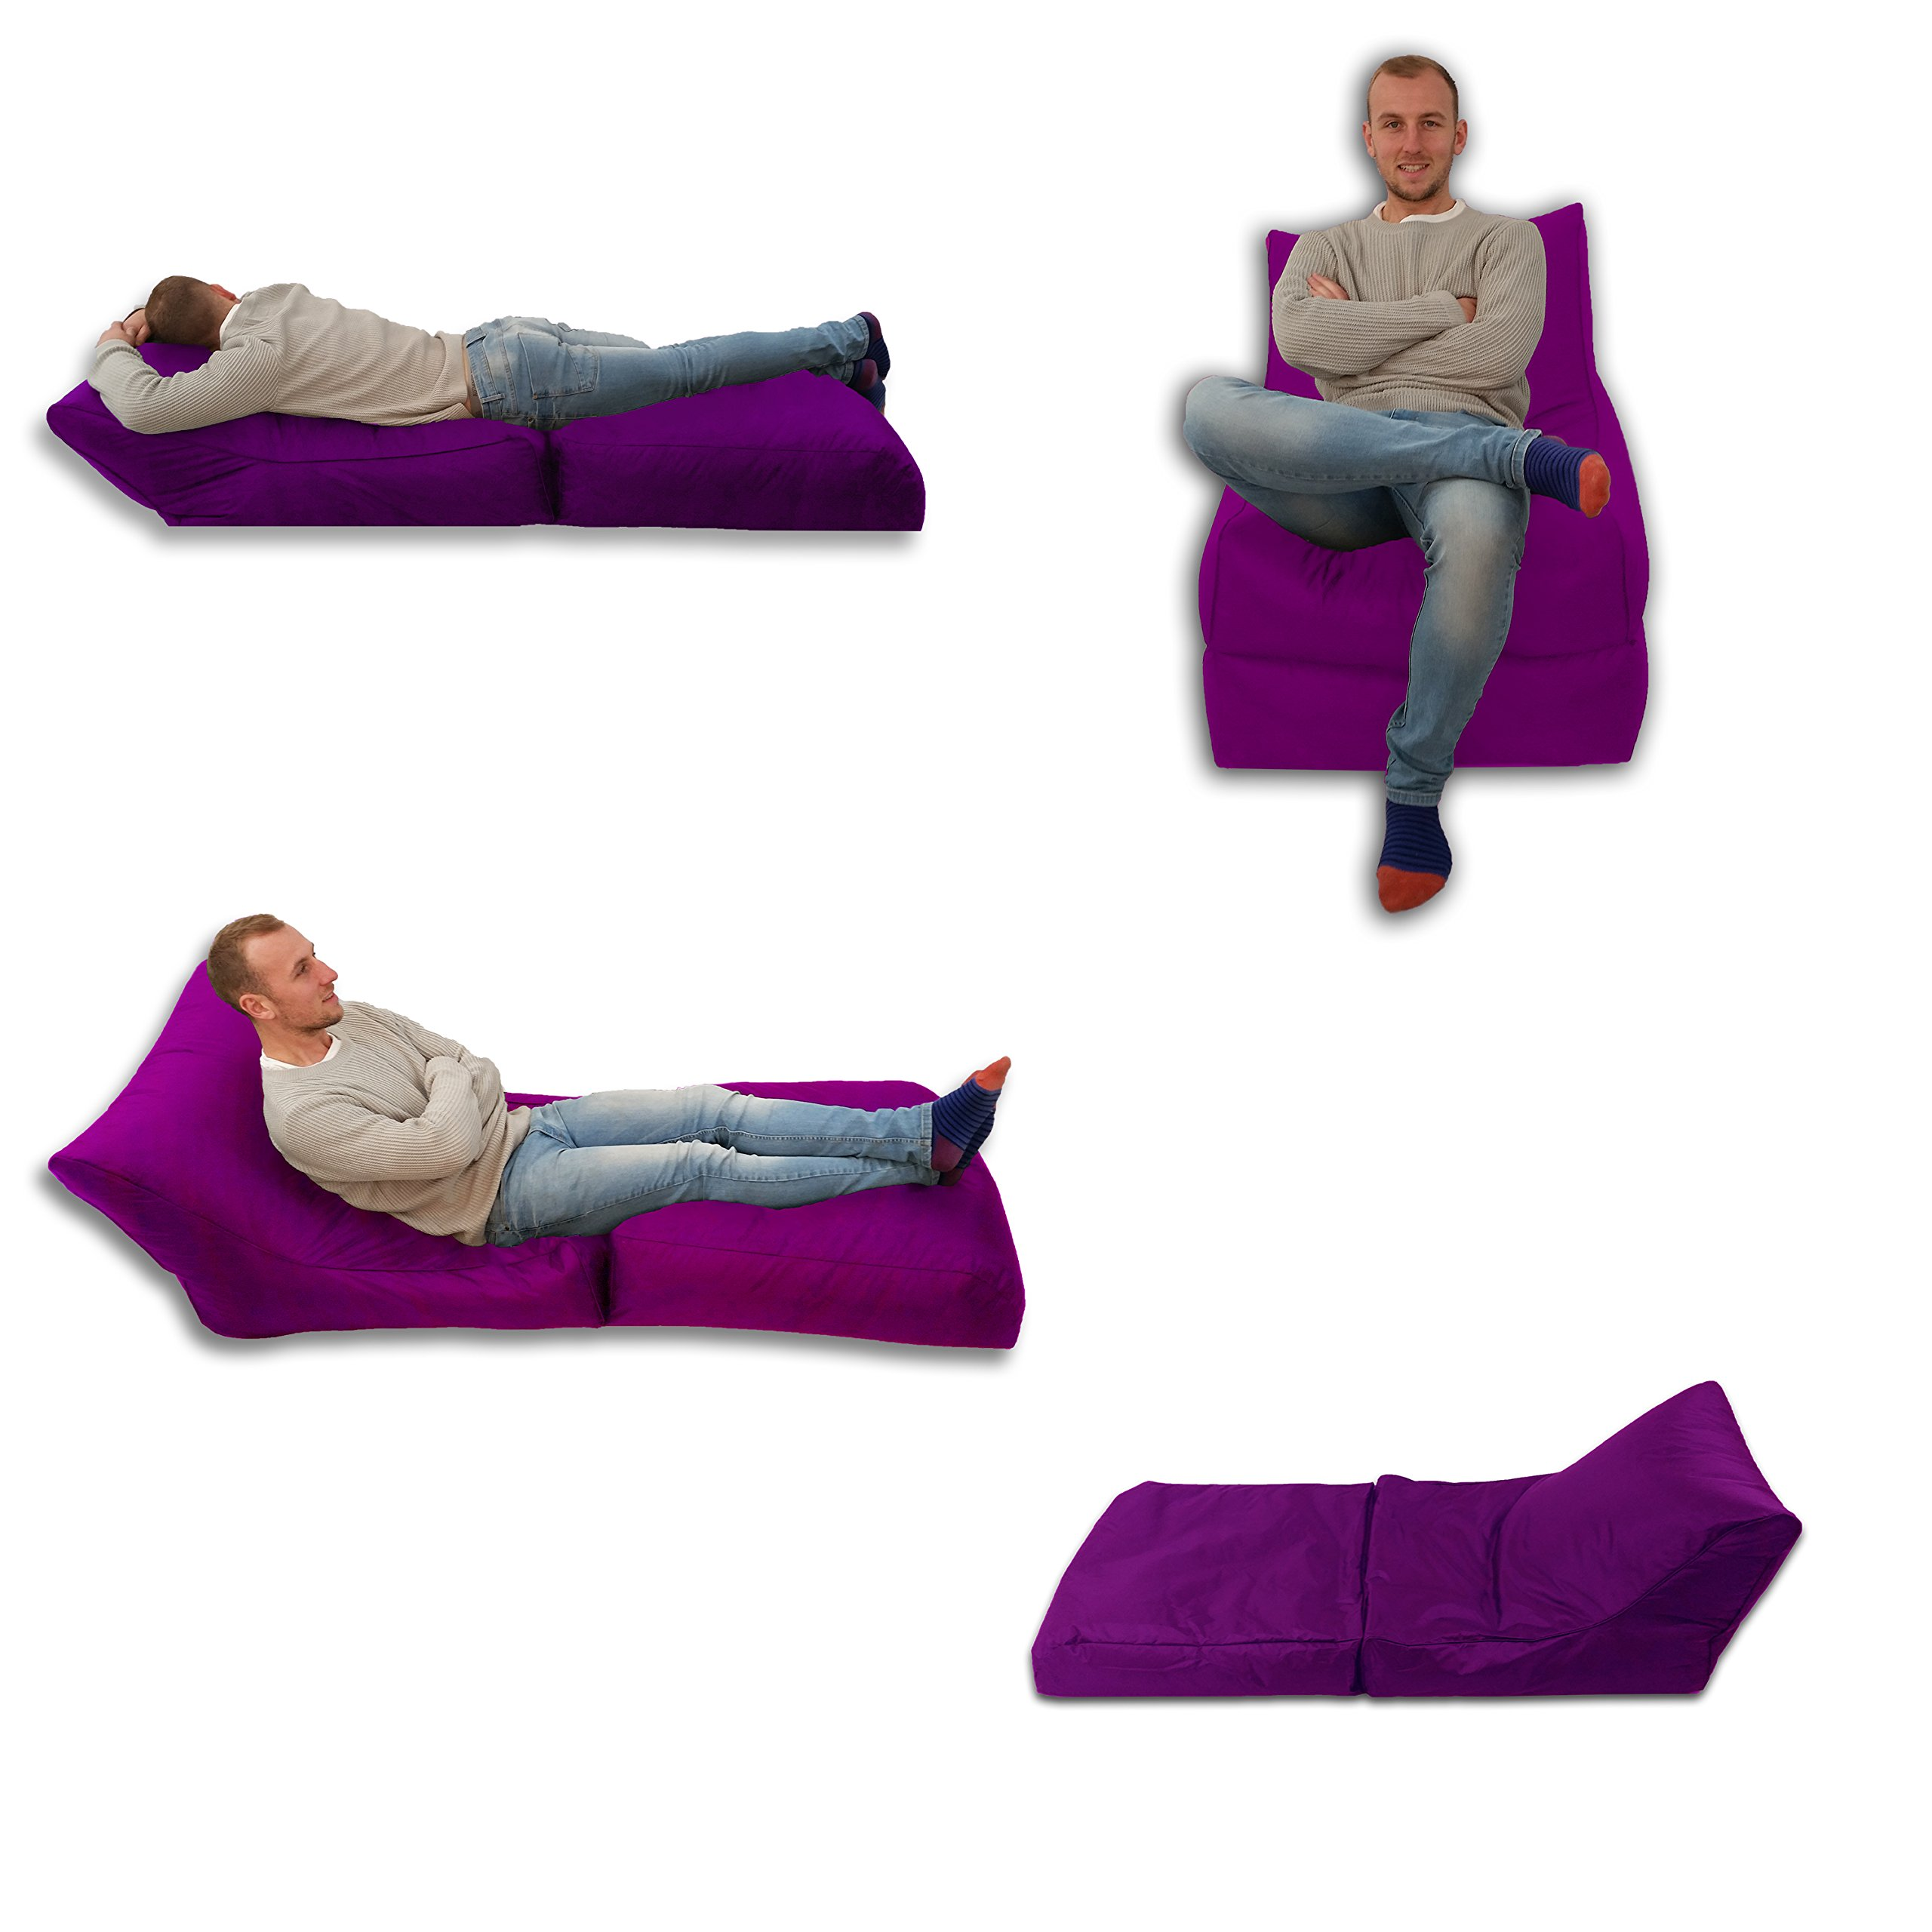 Beanbag Bed Chair Purple Indoor And Outd Buy Online In Cambodia At Desertcart